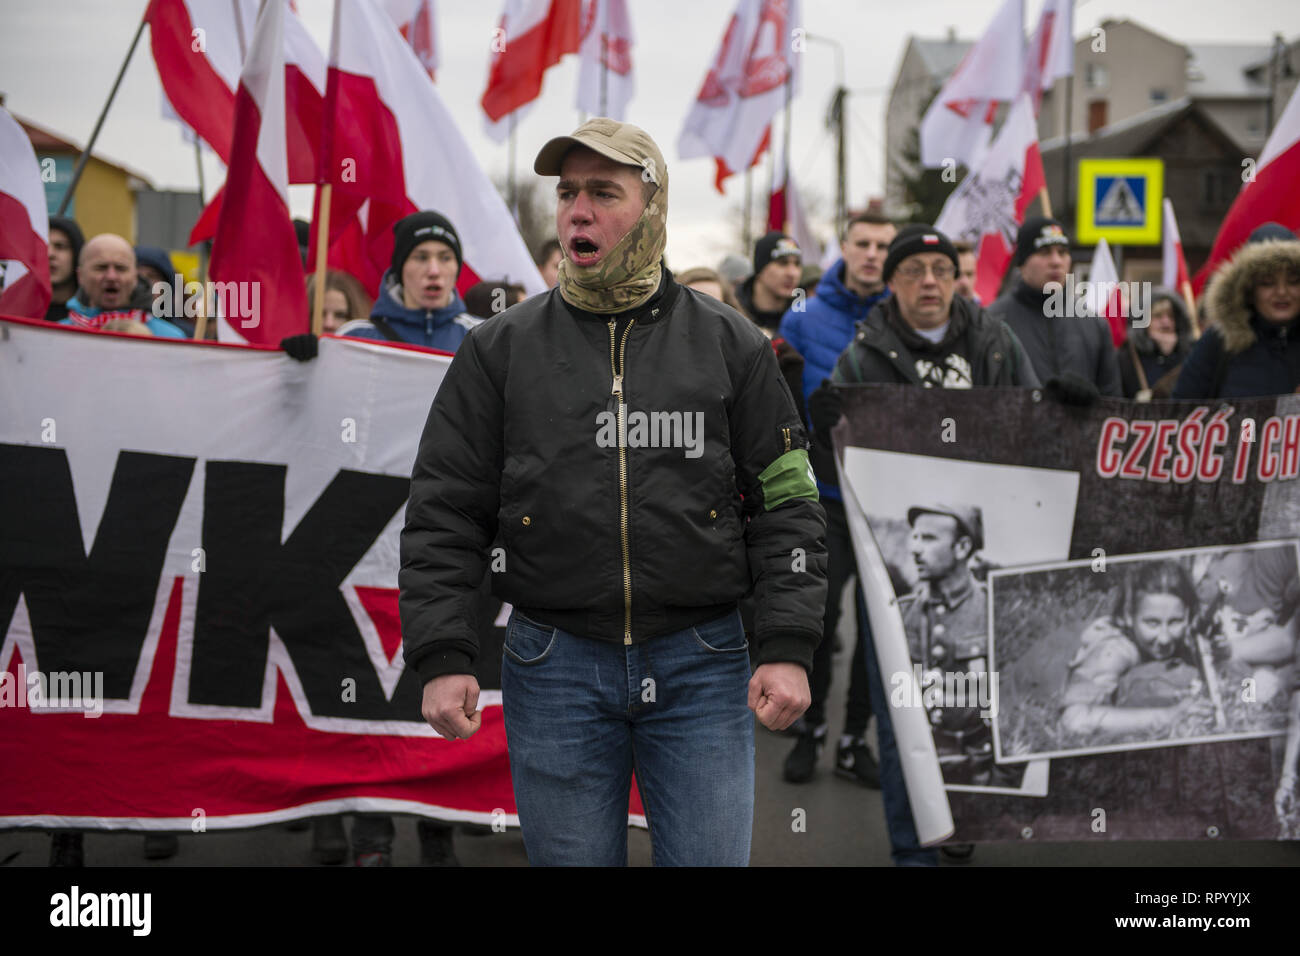 Hajnowka, Poldlaskie, Poland. 23rd Feb, 2019. A nationalist is seen shouting slogans during the march.Polish nationalists organized a commemorative march of the 'Cursed Soldiers'' in the city of Hajnowka next to the Belarusian border. The Cursed Soldiers also known as the Doomed Soldiers were anti-communist resistant fighters after WWII, however they were also famous of committing crimes against civilians, mostly ethnic Belarusians. Credit: Attila Husejnow/SOPA Images/ZUMA Wire/Alamy Live News - Stock Image